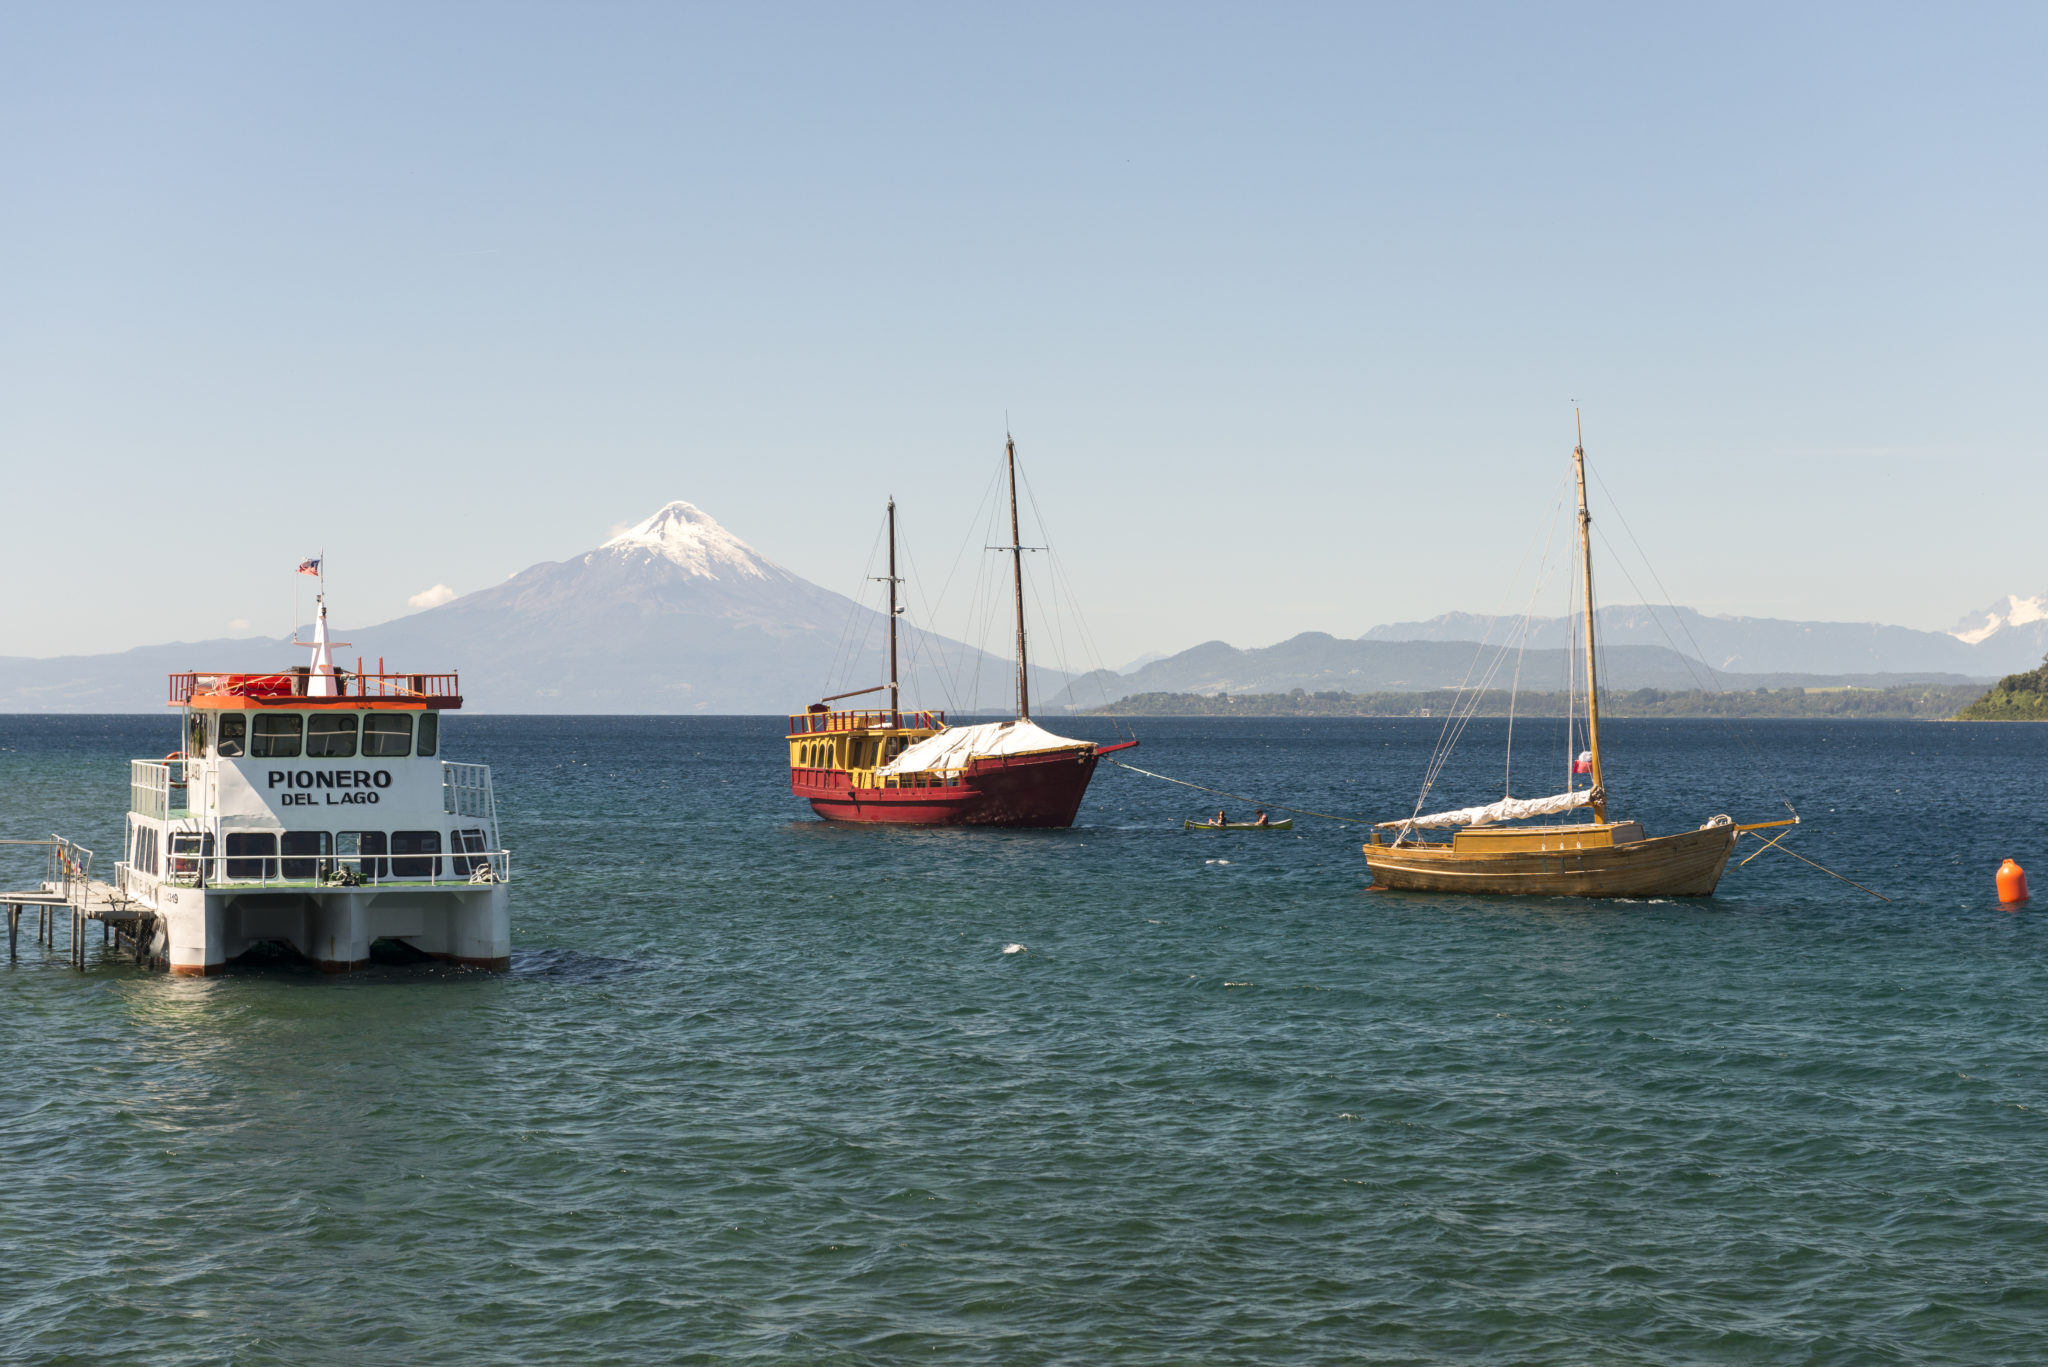 The volcano and the view of Puerto Varas